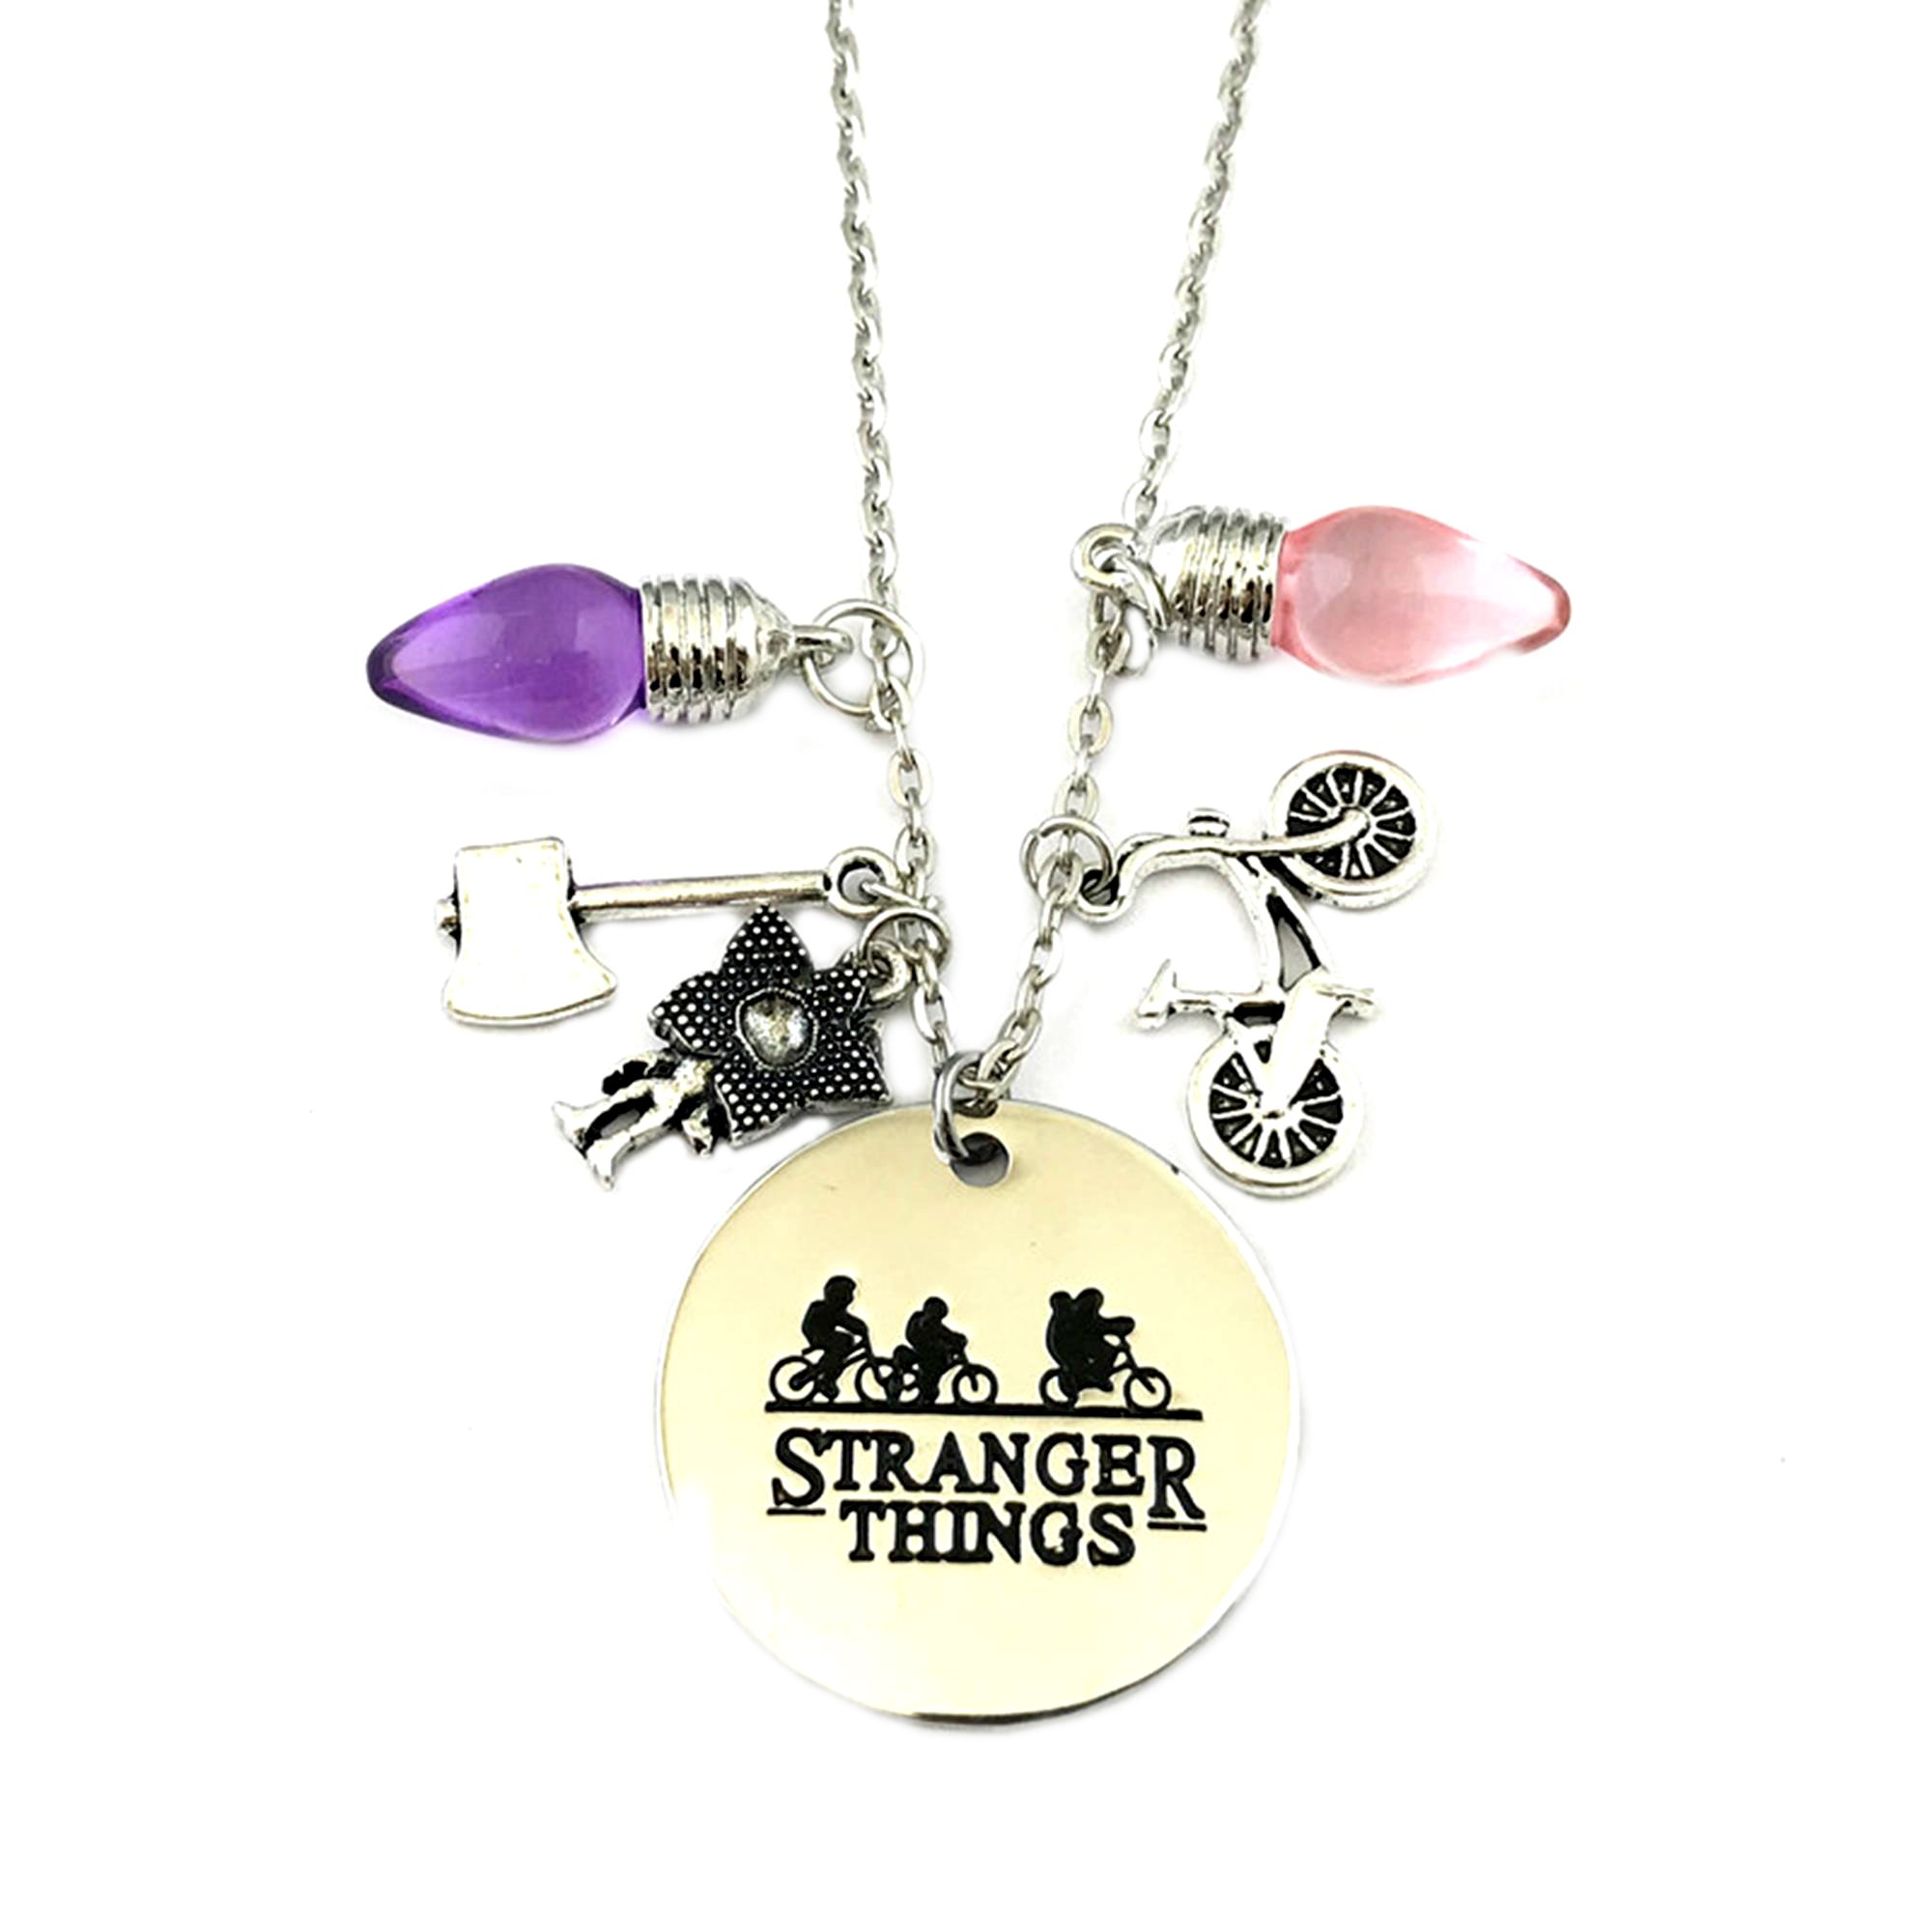 Stranger Things Eleven Cosplay Premium Quality 18'' Pendant Necklace w/Gift Box